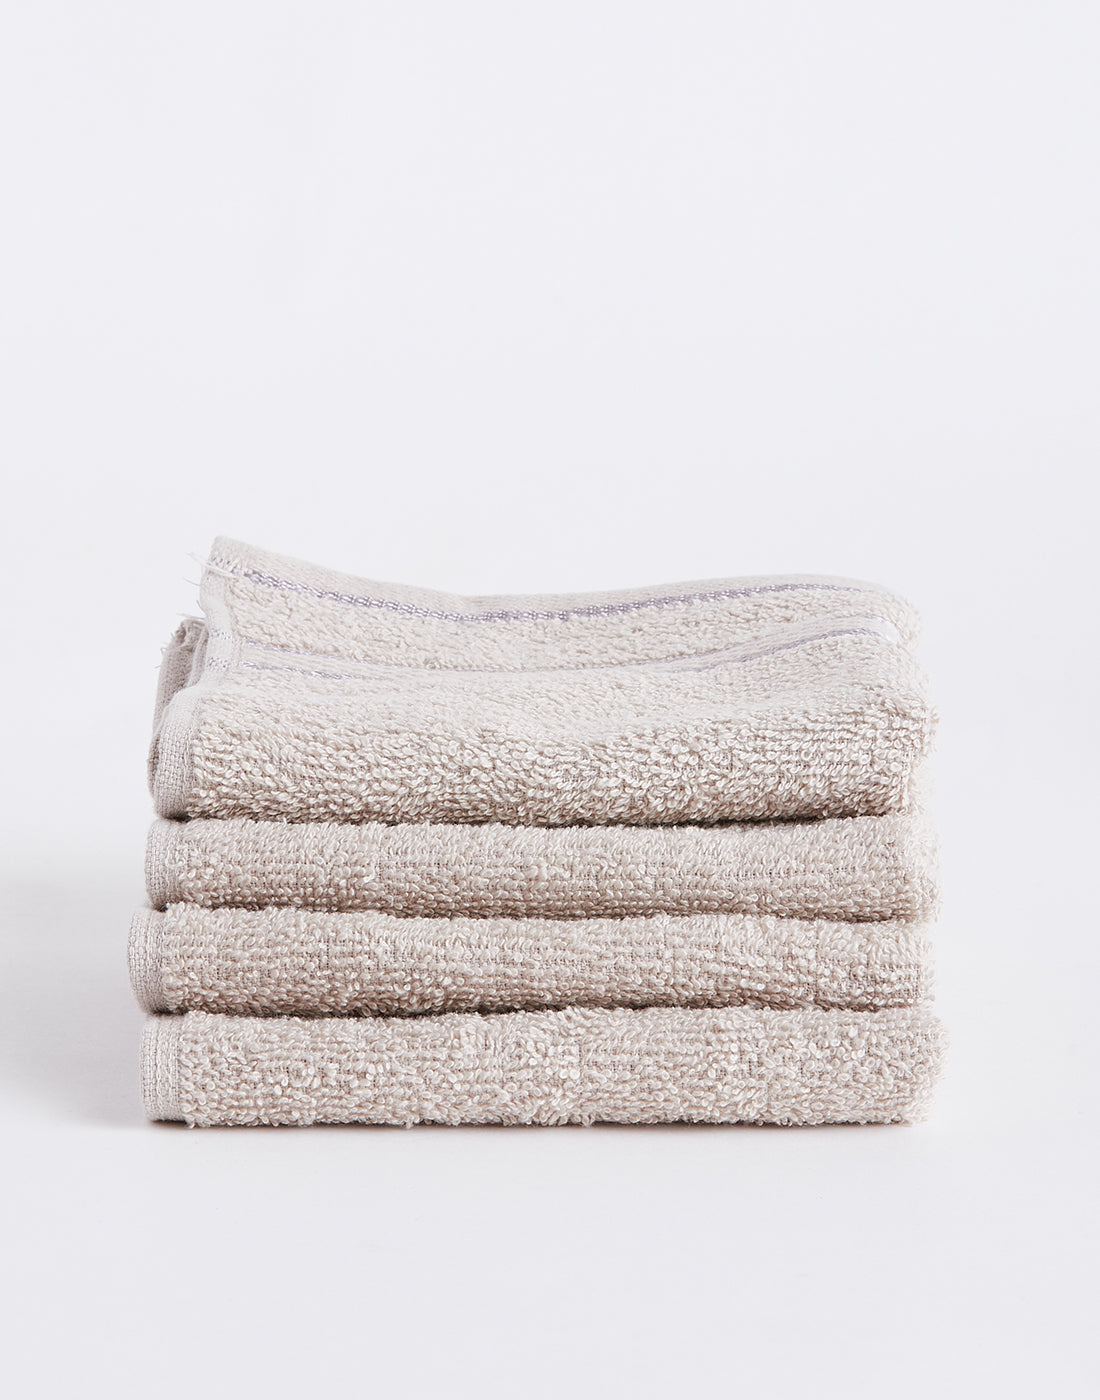 Octave Beige Set of 4 Cotton Face Towels